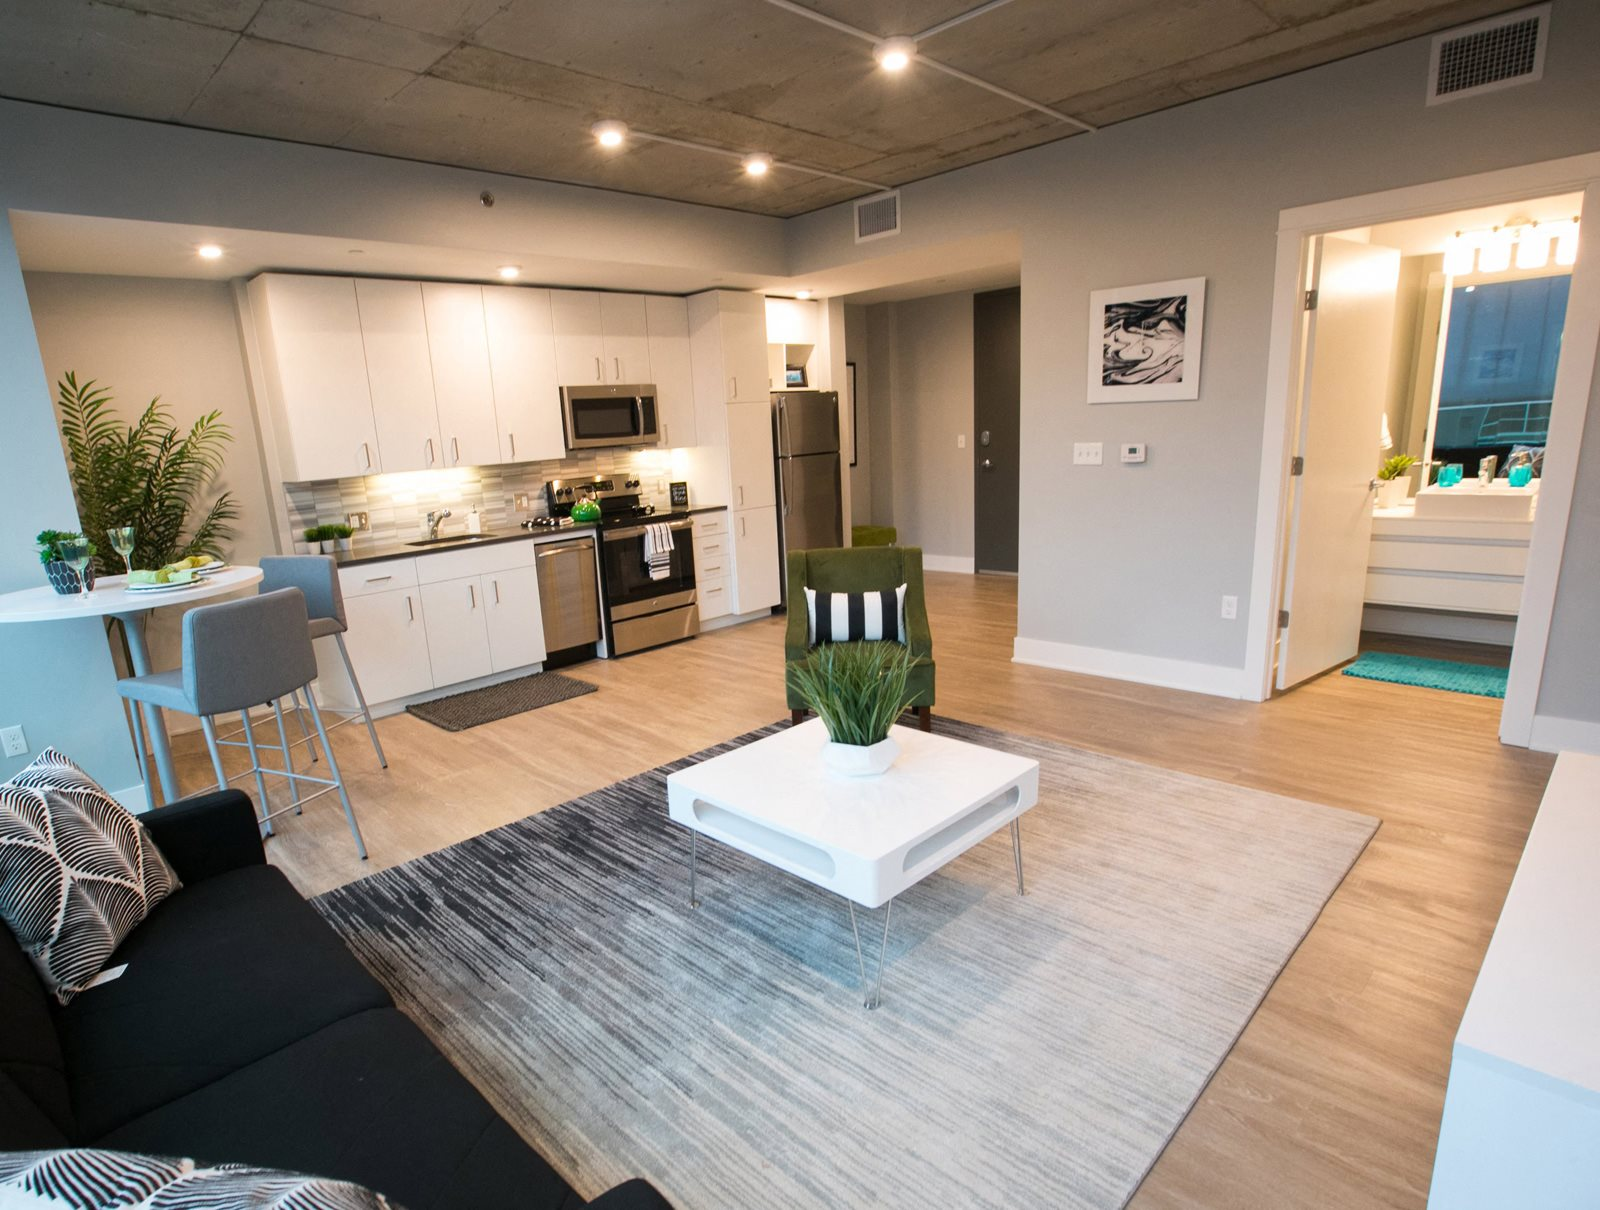 Room to Entertain at Venue Tower Apartments in Grand Rapids